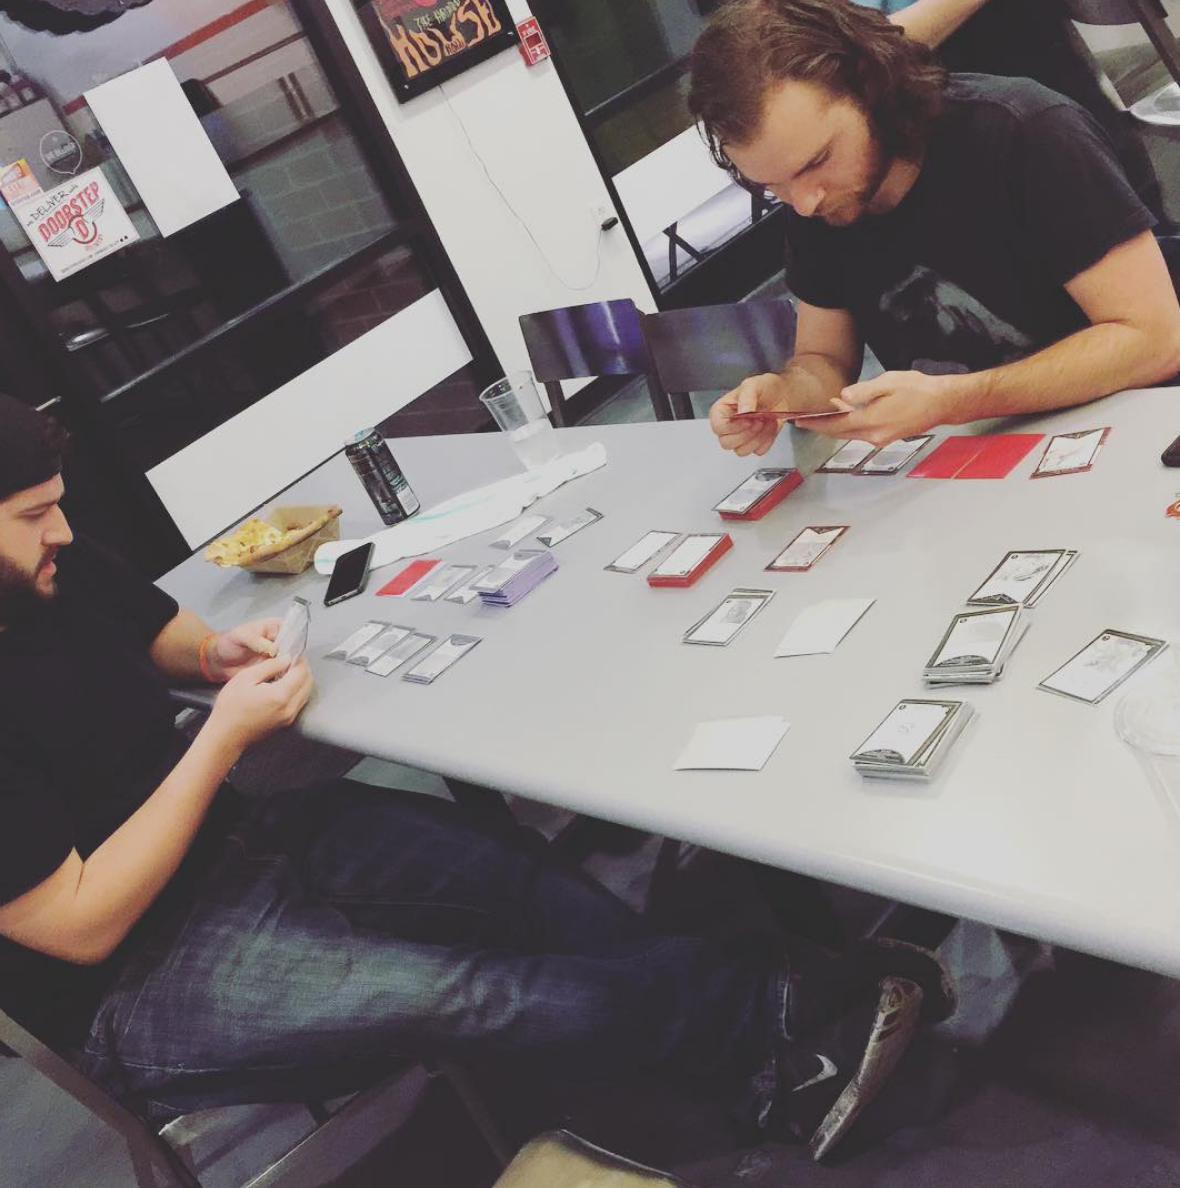 2015 EPIOCH session with Play Tester Jason (left) and Joshua (right) at Sushi Place nicknamed Club Fuck-Up